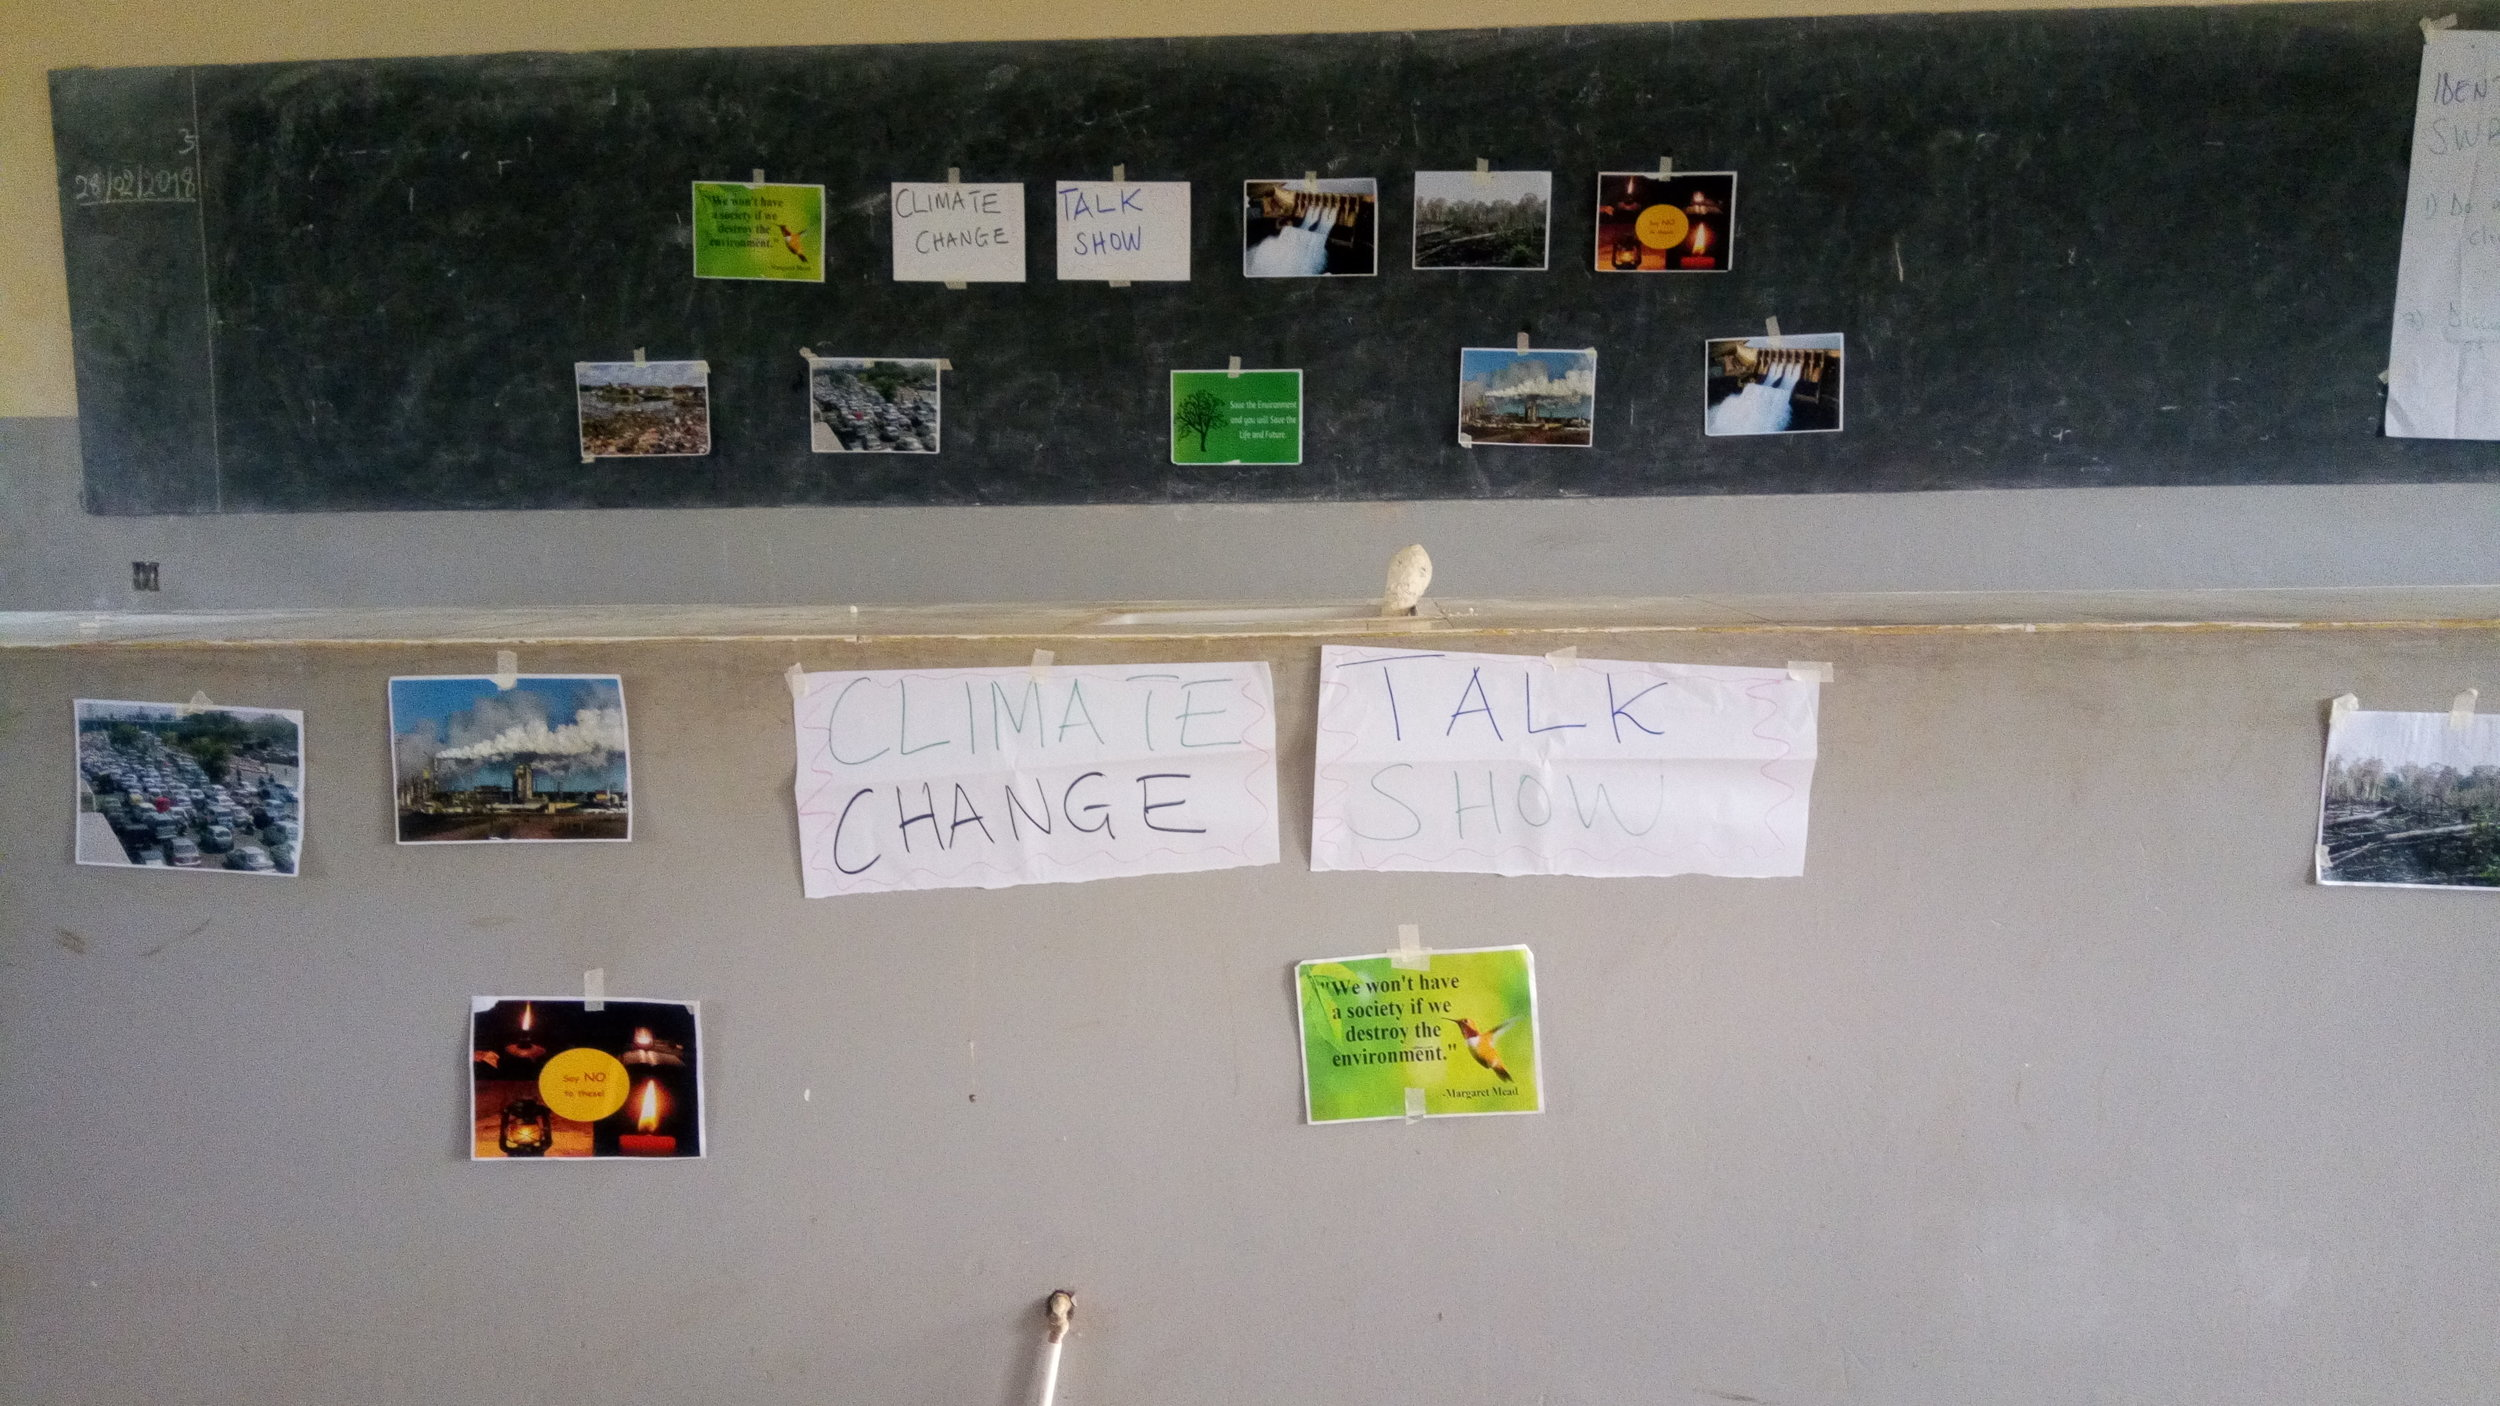 Set up for climate change talk show (1).jpg